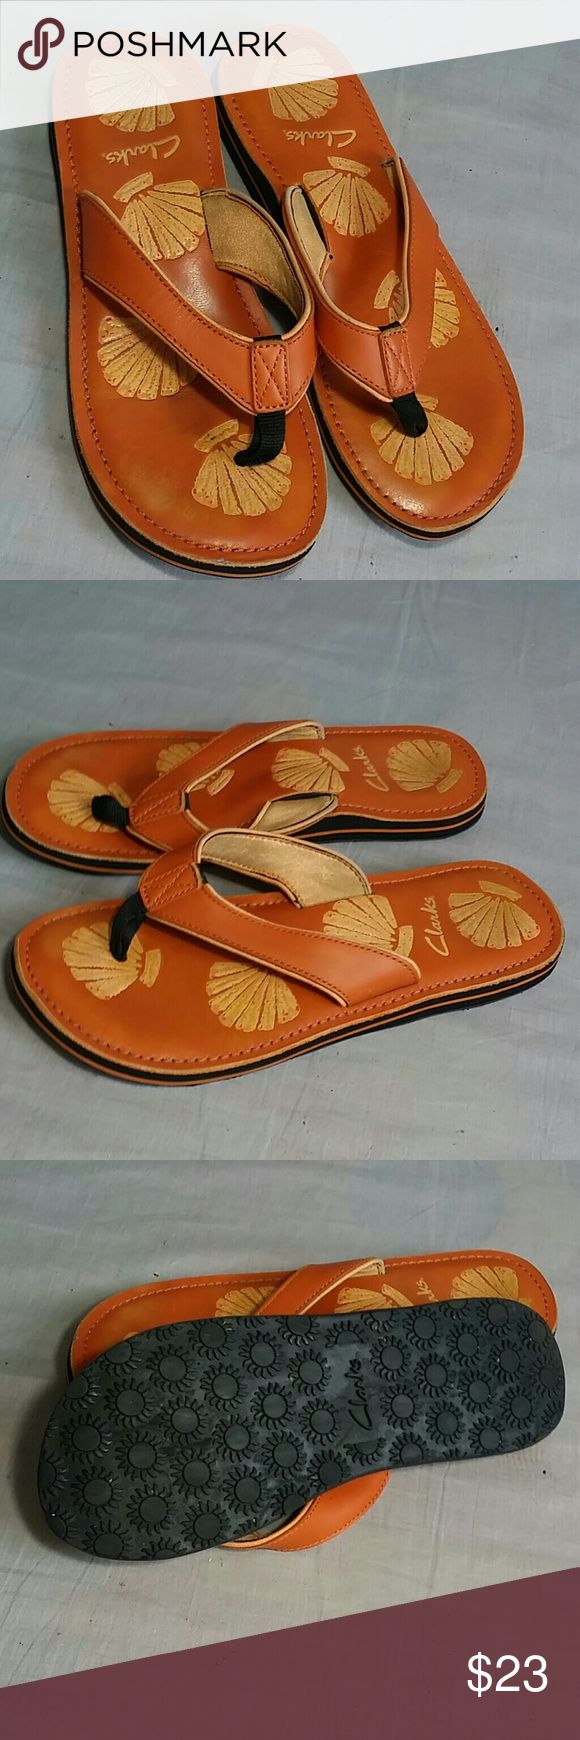 Clarks Sandals Orange 10 M Leather T-strap Item is in a good condition,please check the pictures, NO PETS AND SMOKE FREE HOME. Clarks Shoes Sandals